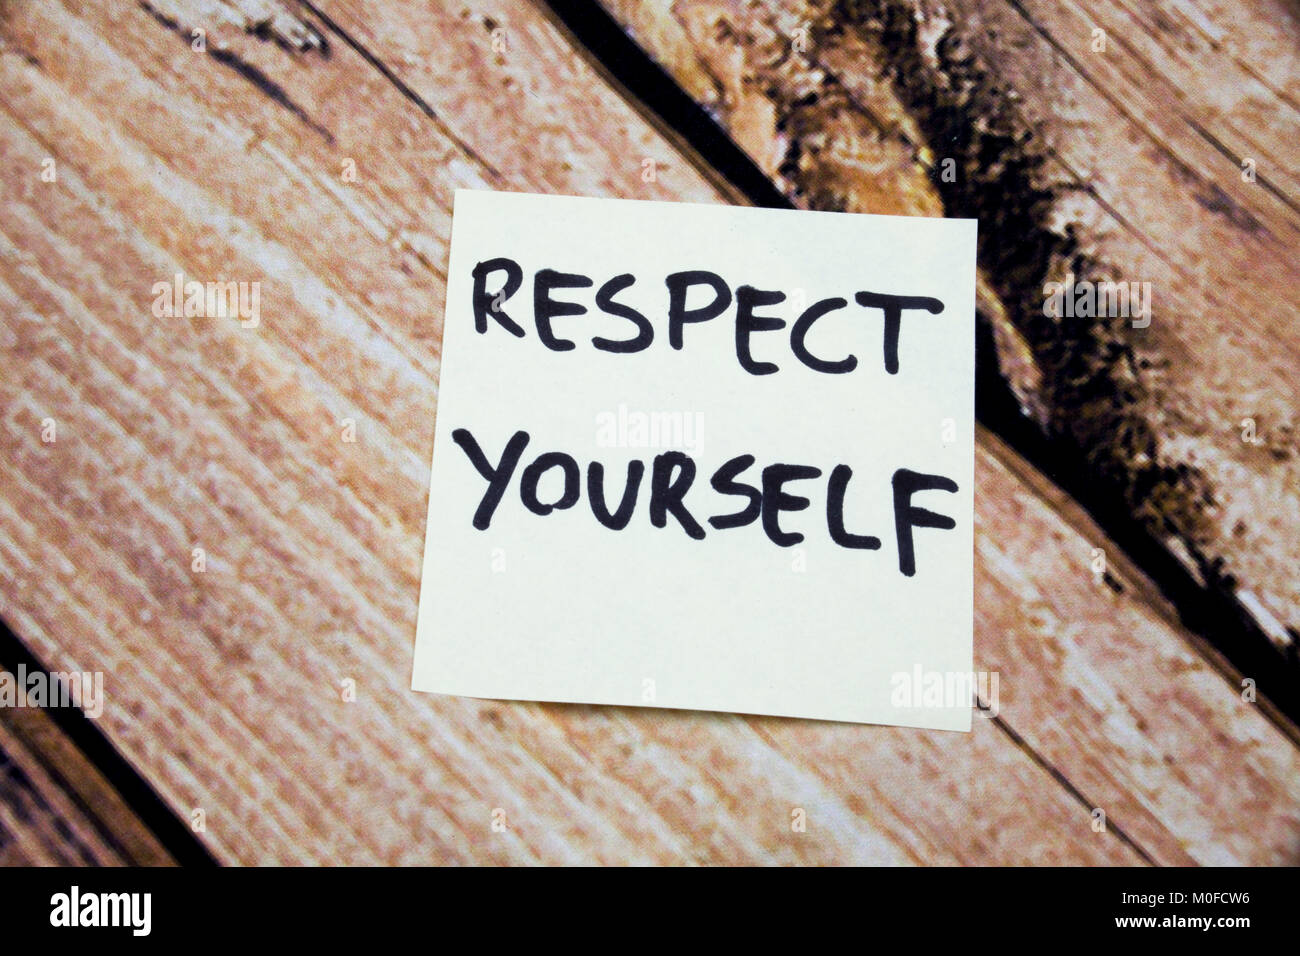 Respect Yourself -Hand written yellow sticky note wooden background - Stock Image